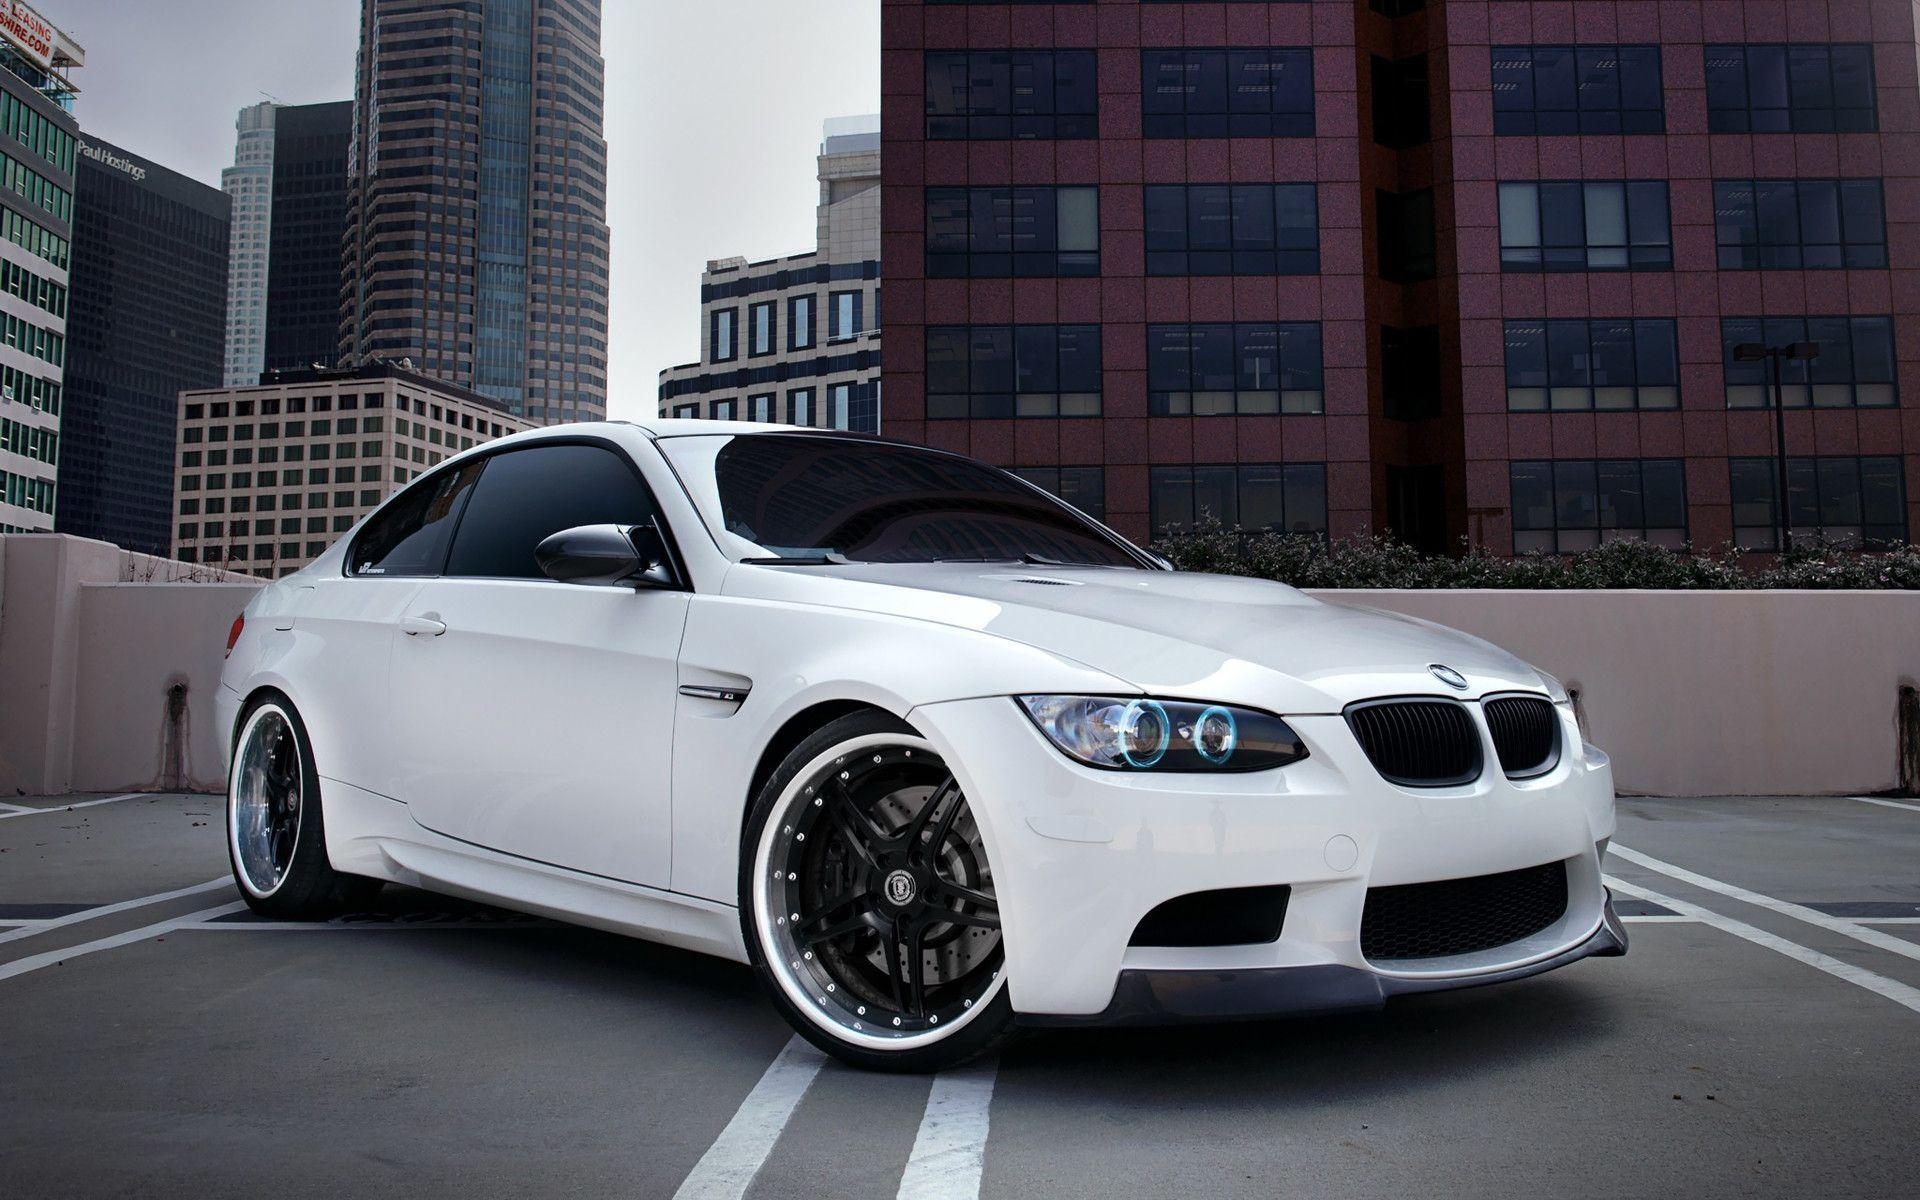 Fonds d&Bmw M3 : tous les wallpapers Bmw M3